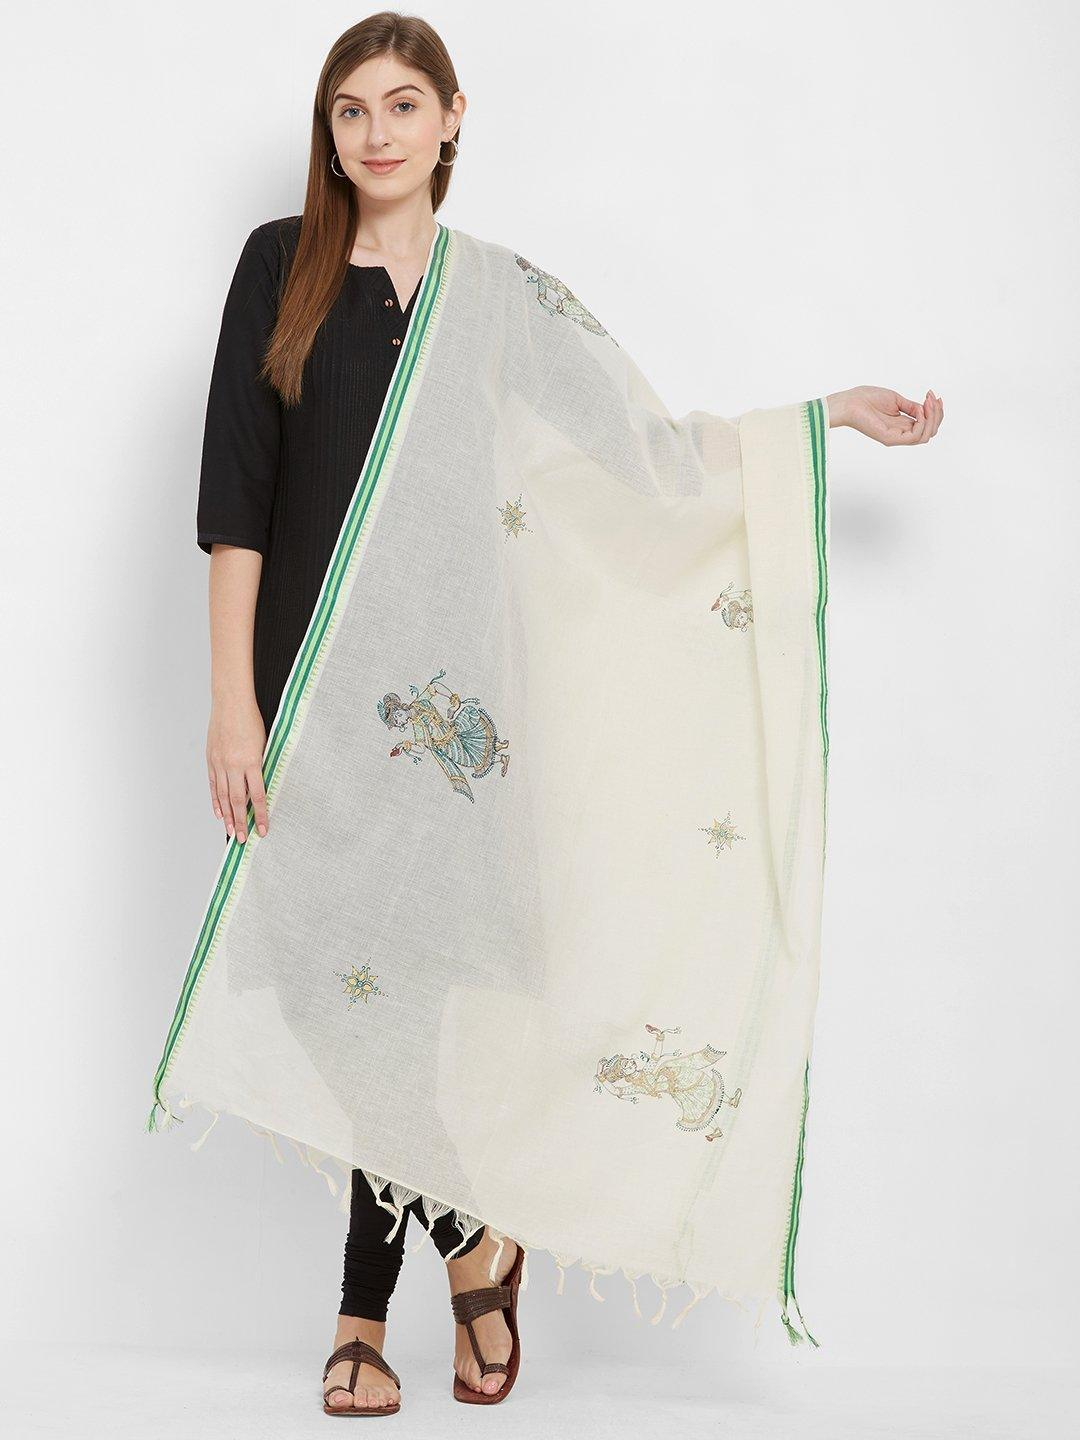 CraftsCollection.in -Offwhite cotton Dupatta with handpainted pattachitra motifs